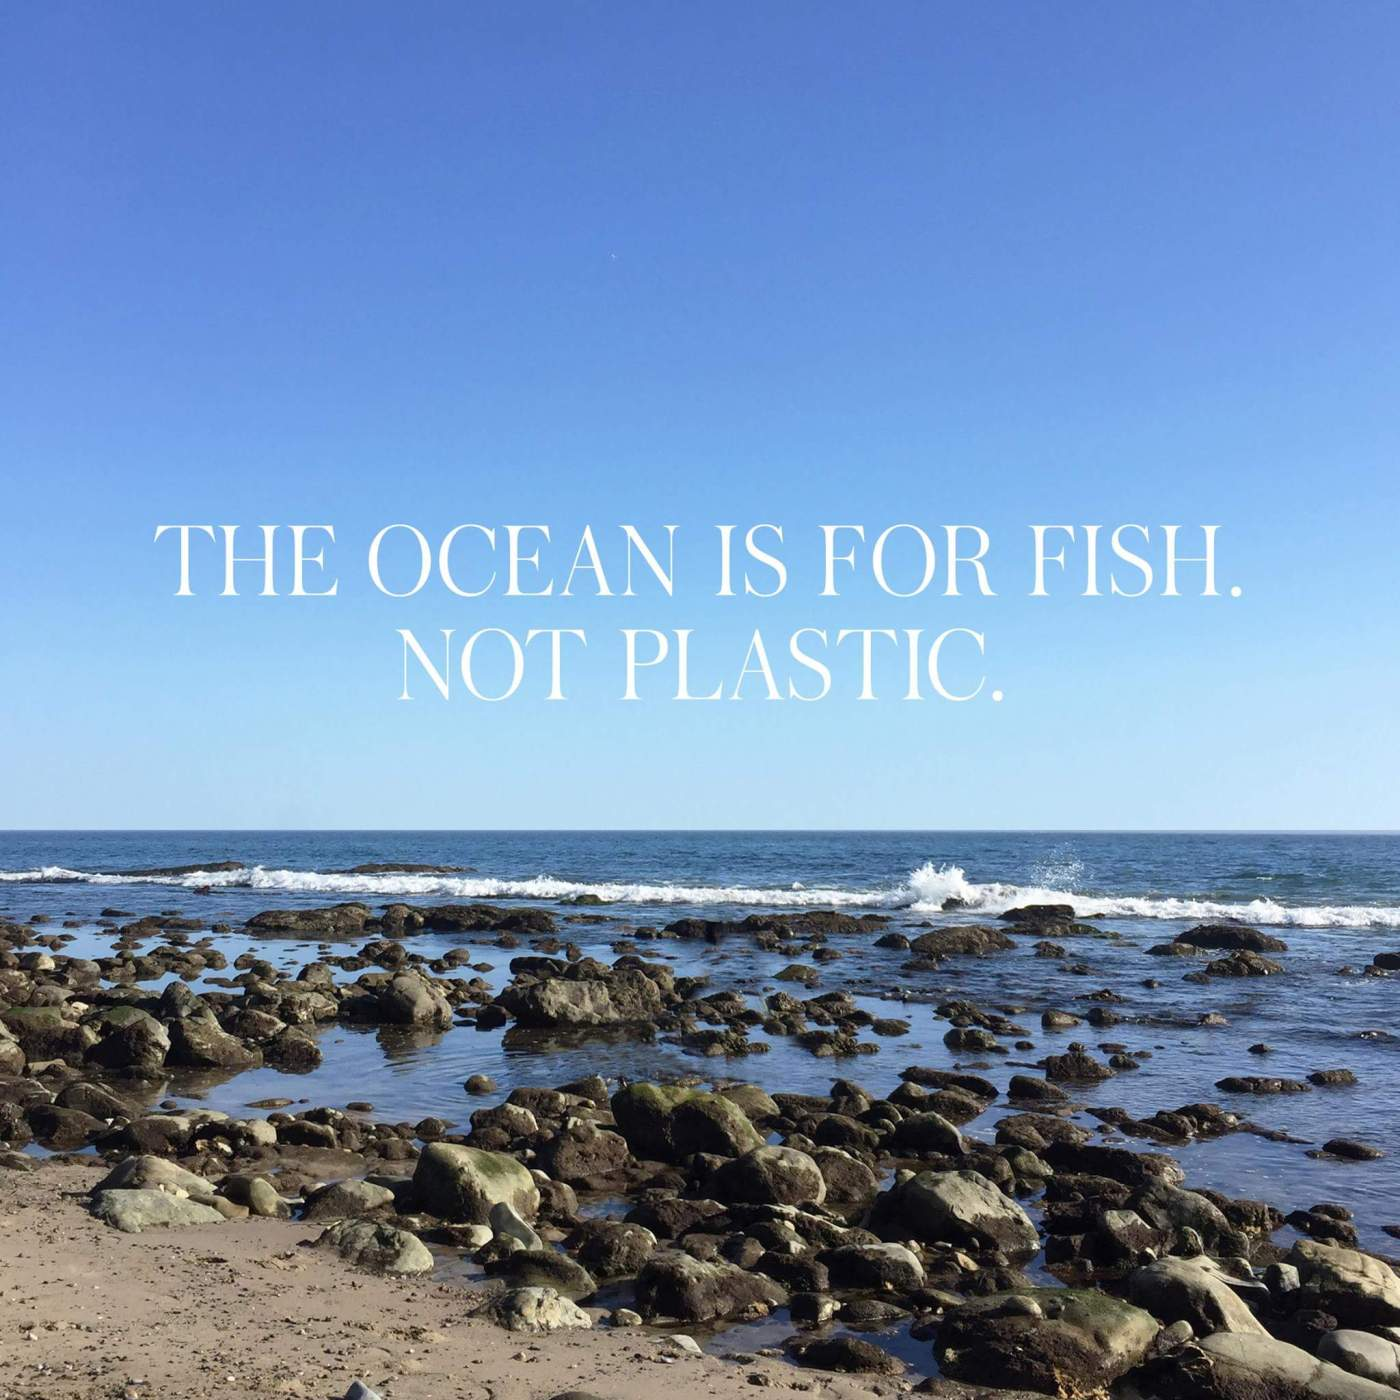 Better Beauty Vermont The Ocean is for Fish not Plastic